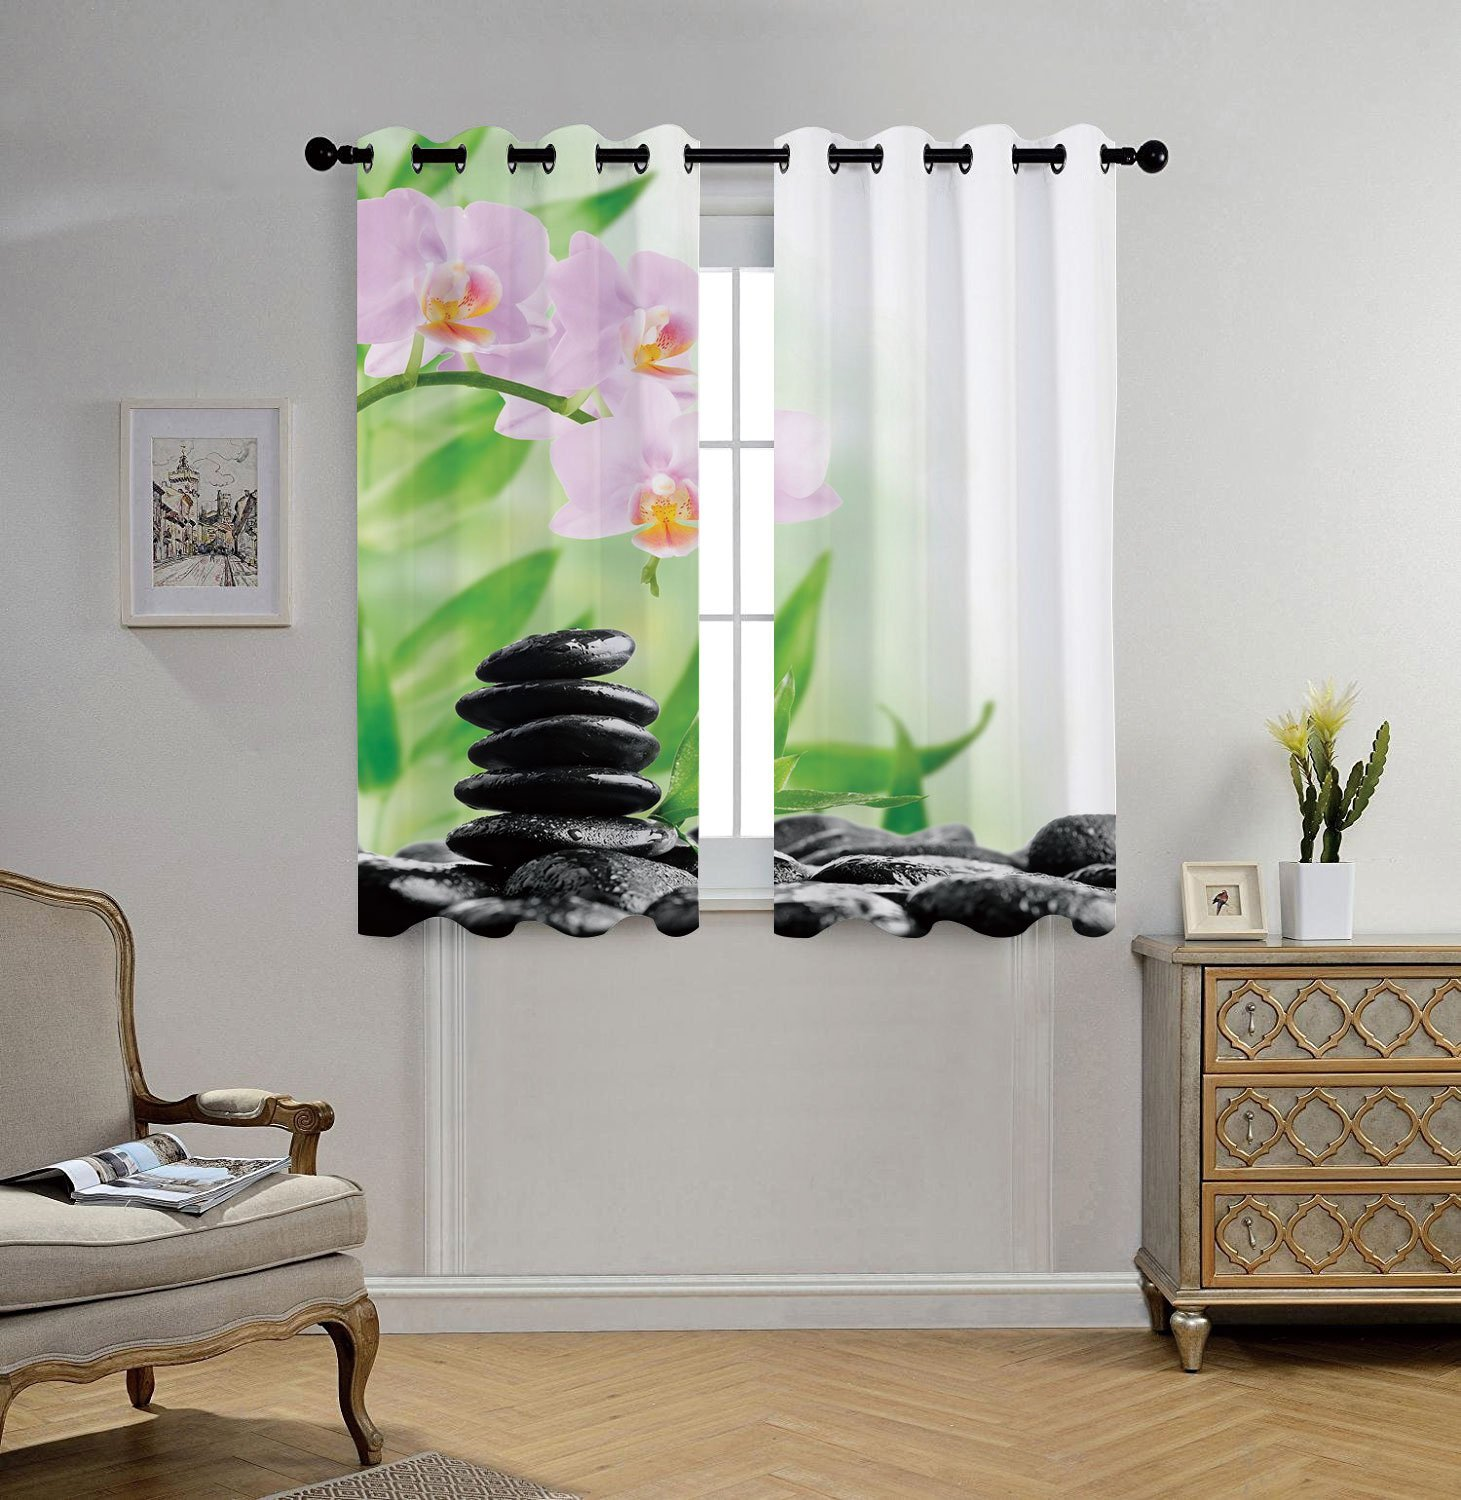 Stylish Window Curtains,Spa,Zen Basalt Stones and Orchid with Dew Peaceful Nature Theraphy Massage Meditation Decorative,Black Pink Green,2 Panel Set Window Drapes,for Living Room Bedroom Kitchen Cafe